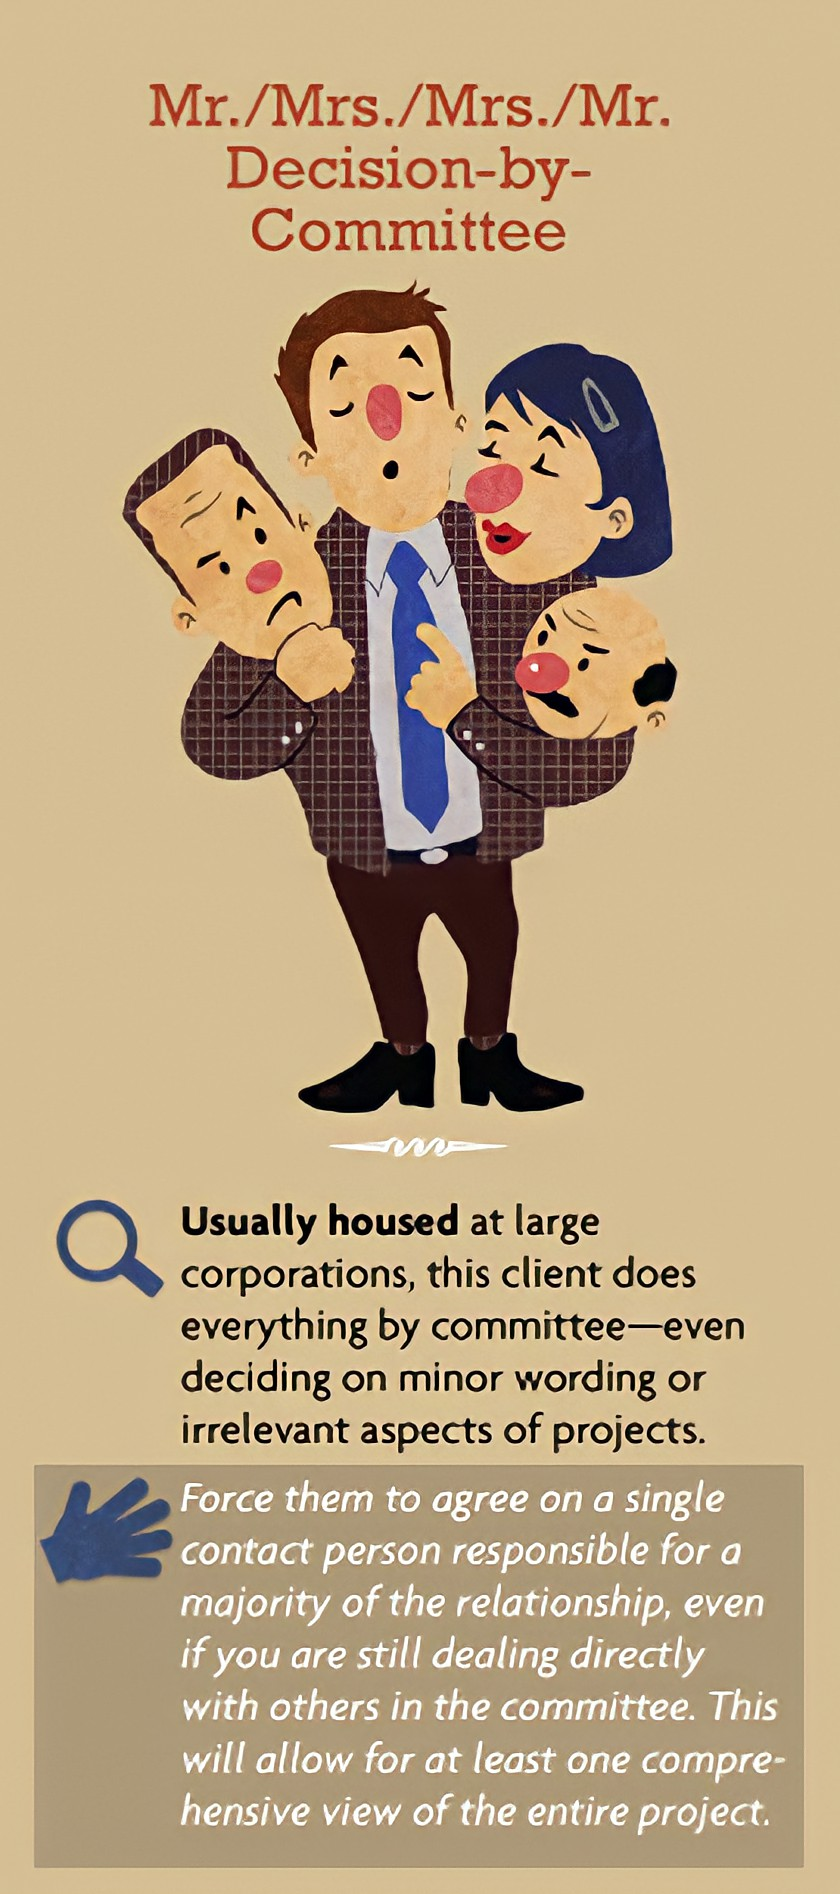 Types of difficult clients - Mr./Mrs./Mrs./Mr. Decision-by-Committee